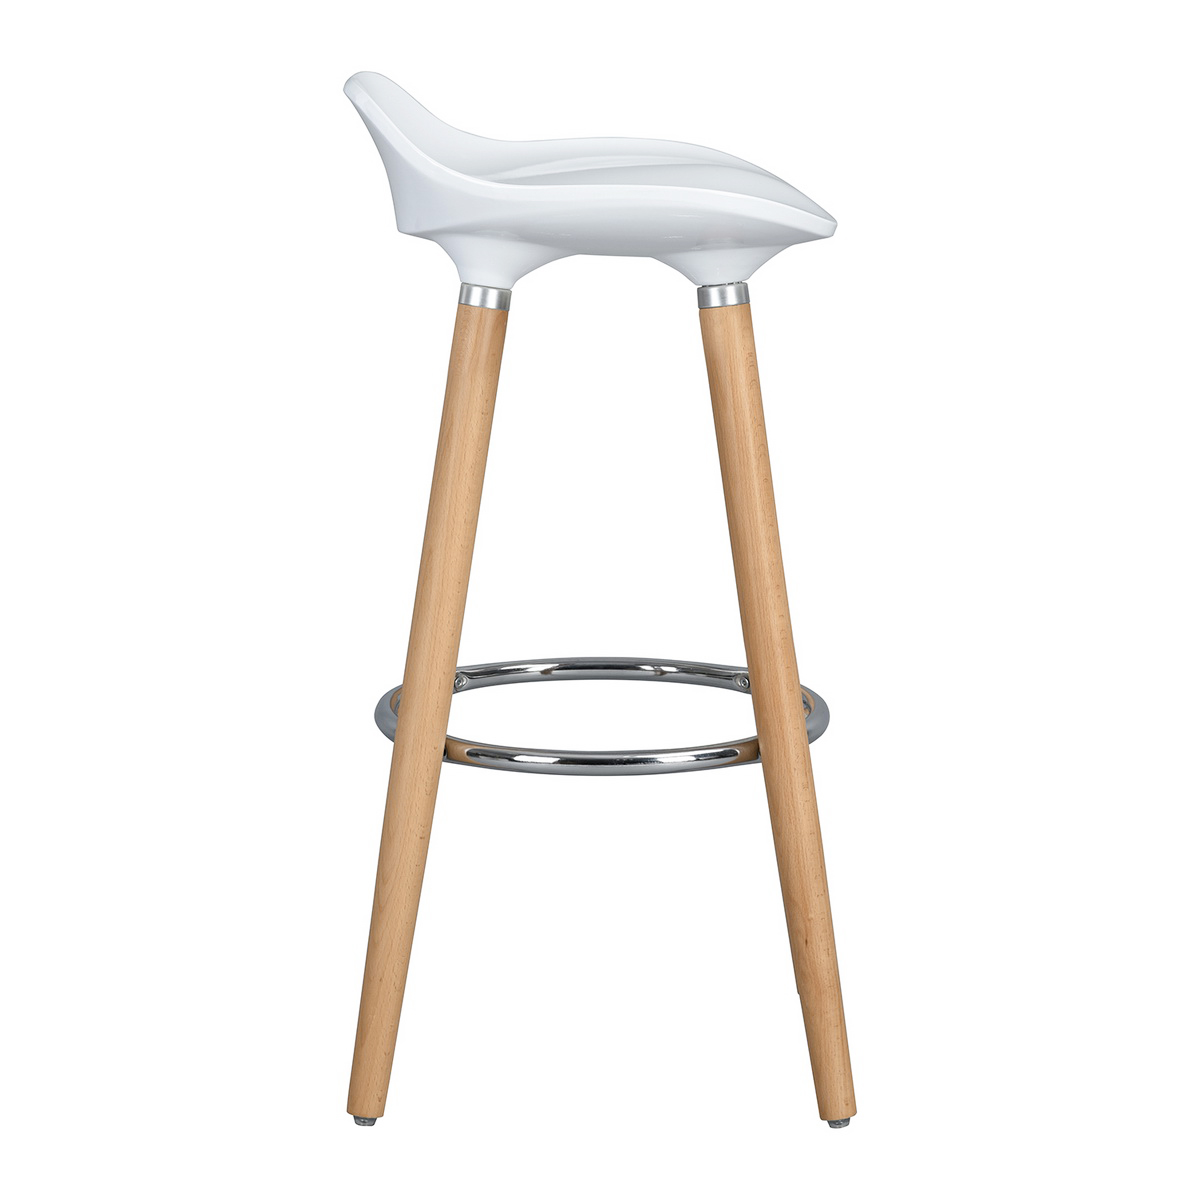 Tabouret Bar Plastique Lot De 2 Tabourets De Bar Plastique Brillant Blanc Pieds